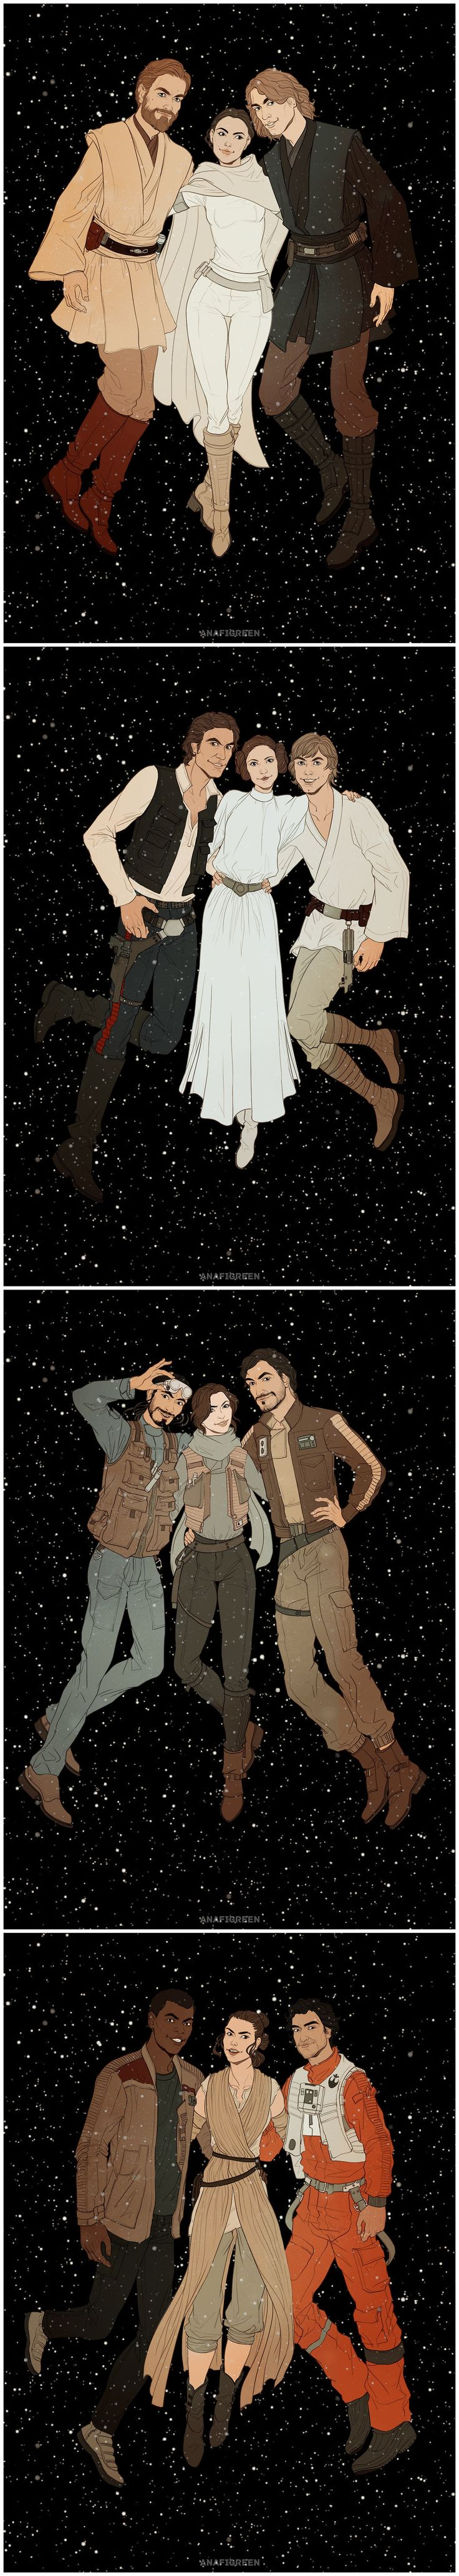 It's always three of us lost among the stars.